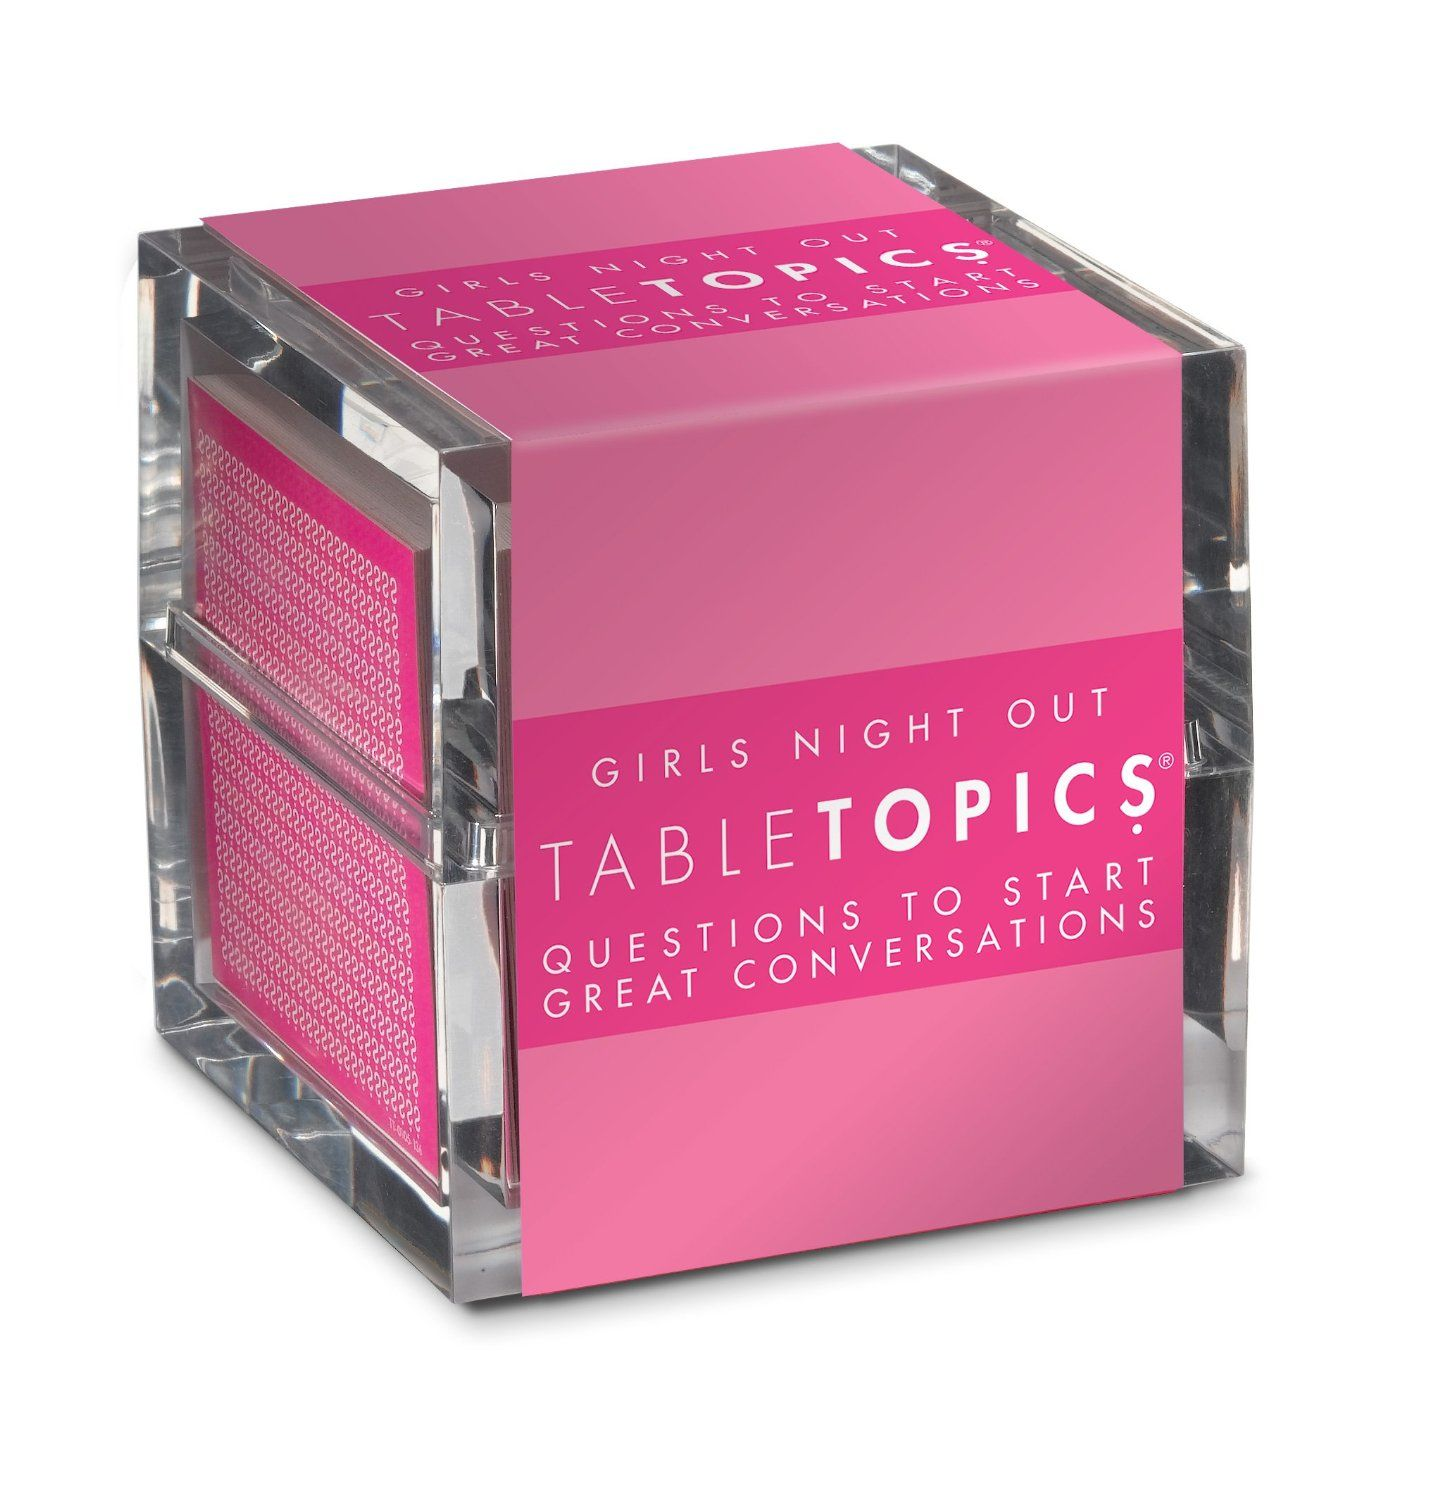 for the next girls night out a table topics game filled with racy questions to